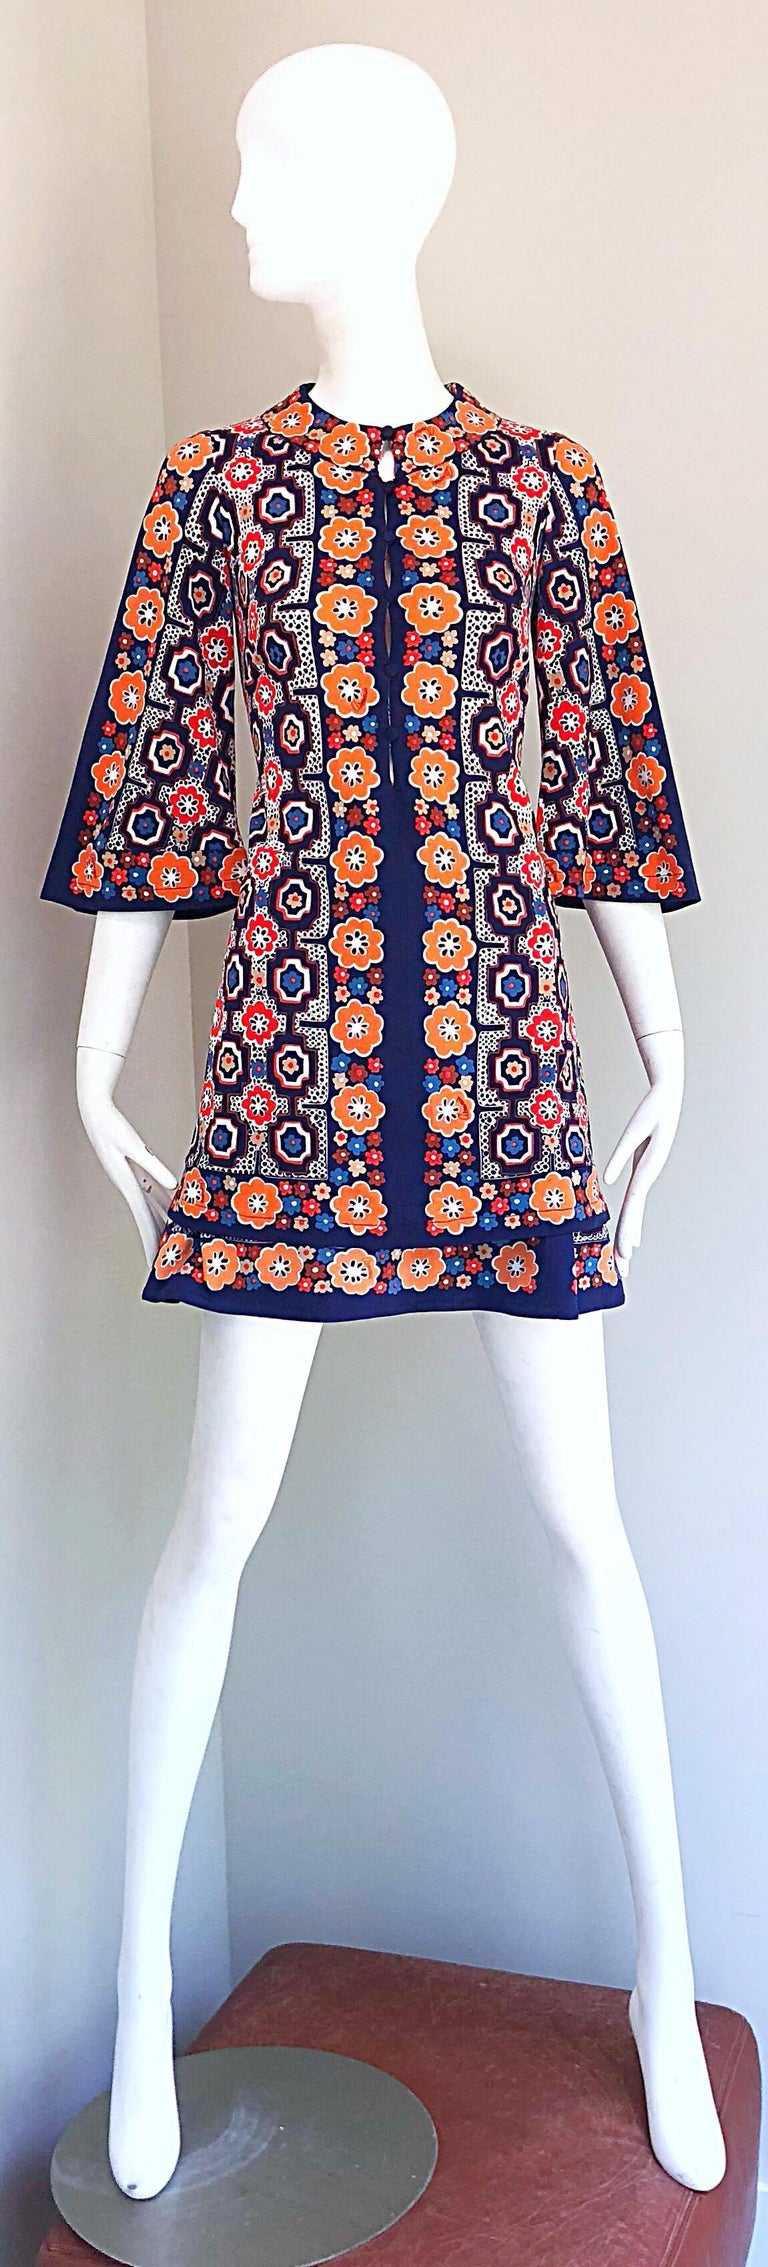 Chic 1960s ARMONIA Italian made jersey tunic and mini skirt ensemble! Features abstract and flower prints throughout in vibrant colors of orange, navy blue, tan, and light blue. Tunic buttons up the front and has dramatic bell sleeves. Mini A-line